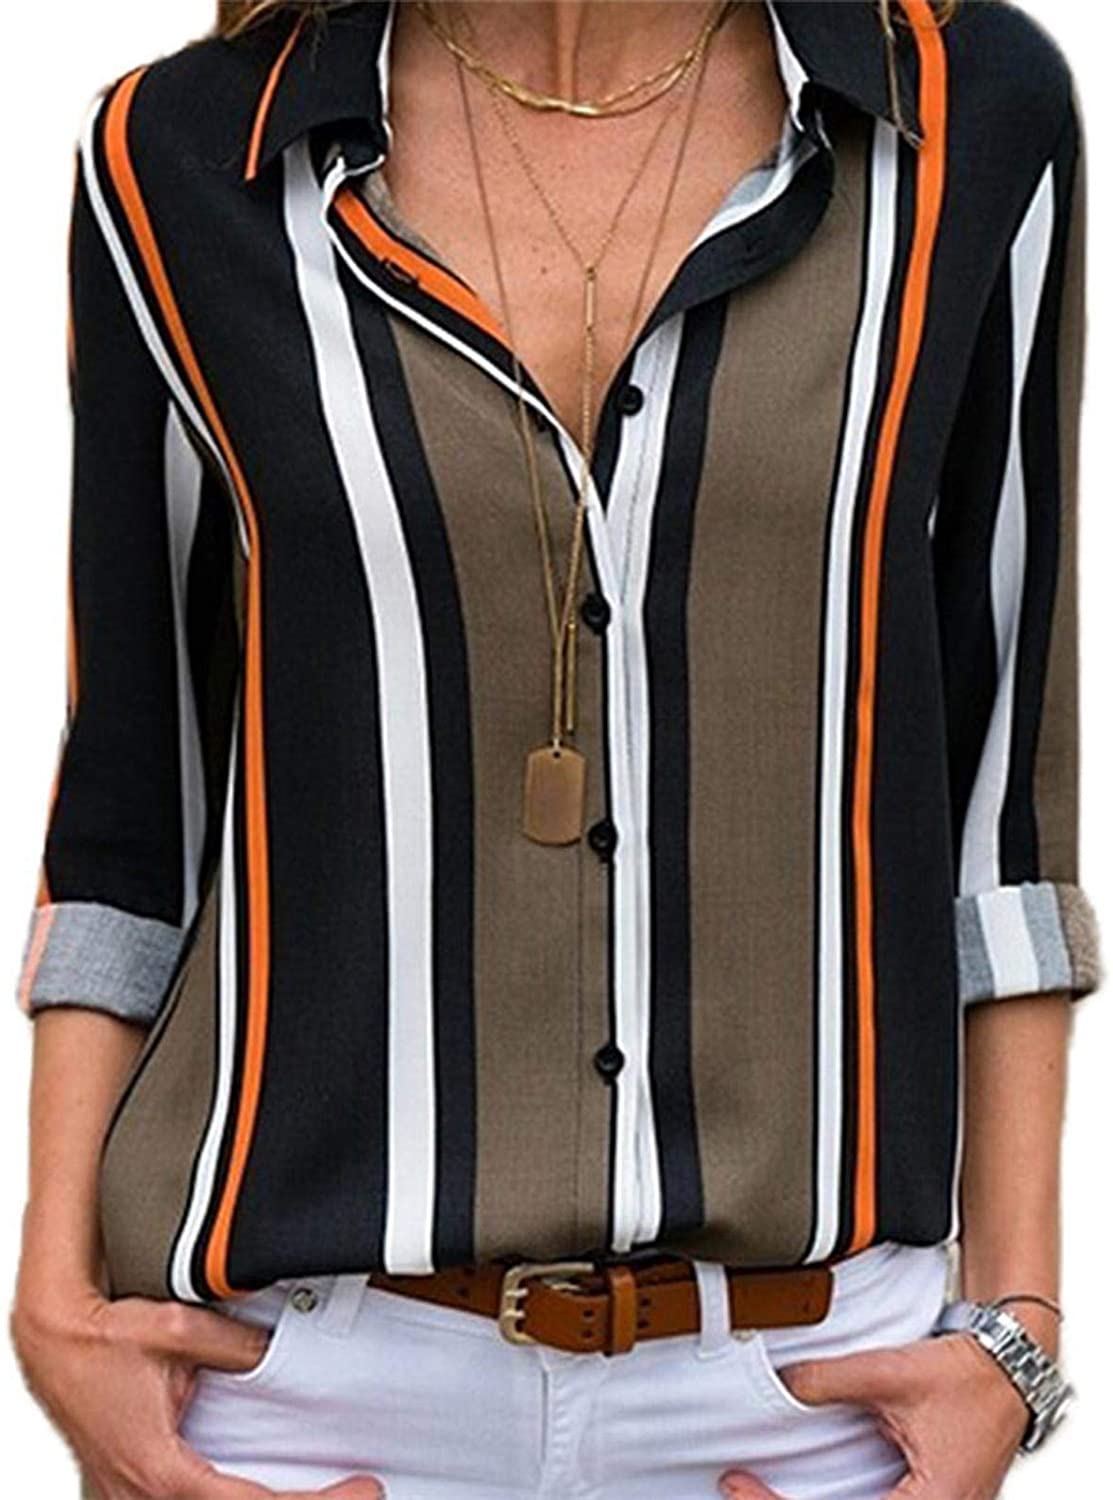 Thrivinger Women V Neck Striped Roll up Sleeve Button Down Blouses Tops, Women's Striped Printing Long Sleeve Shirts Blouses, Long Sleeve V Neck Casual Business Blouses Tops